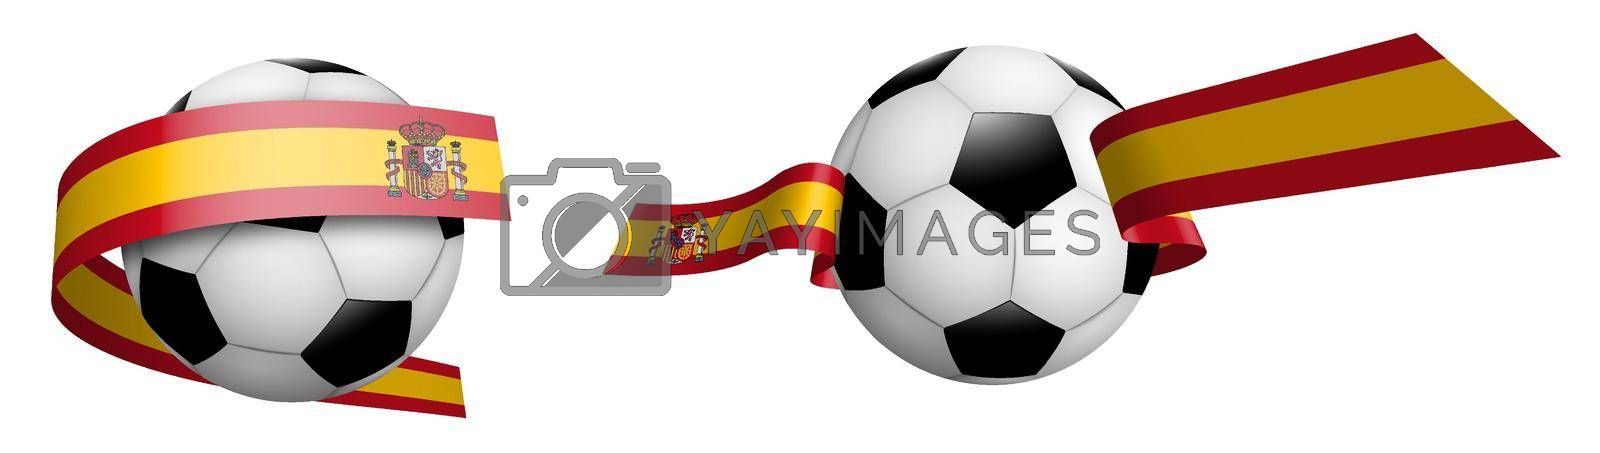 balls for soccer, classic football in ribbons with colors Spain flag. Design element for football competitions. Spain national team. Isolated vector on white background